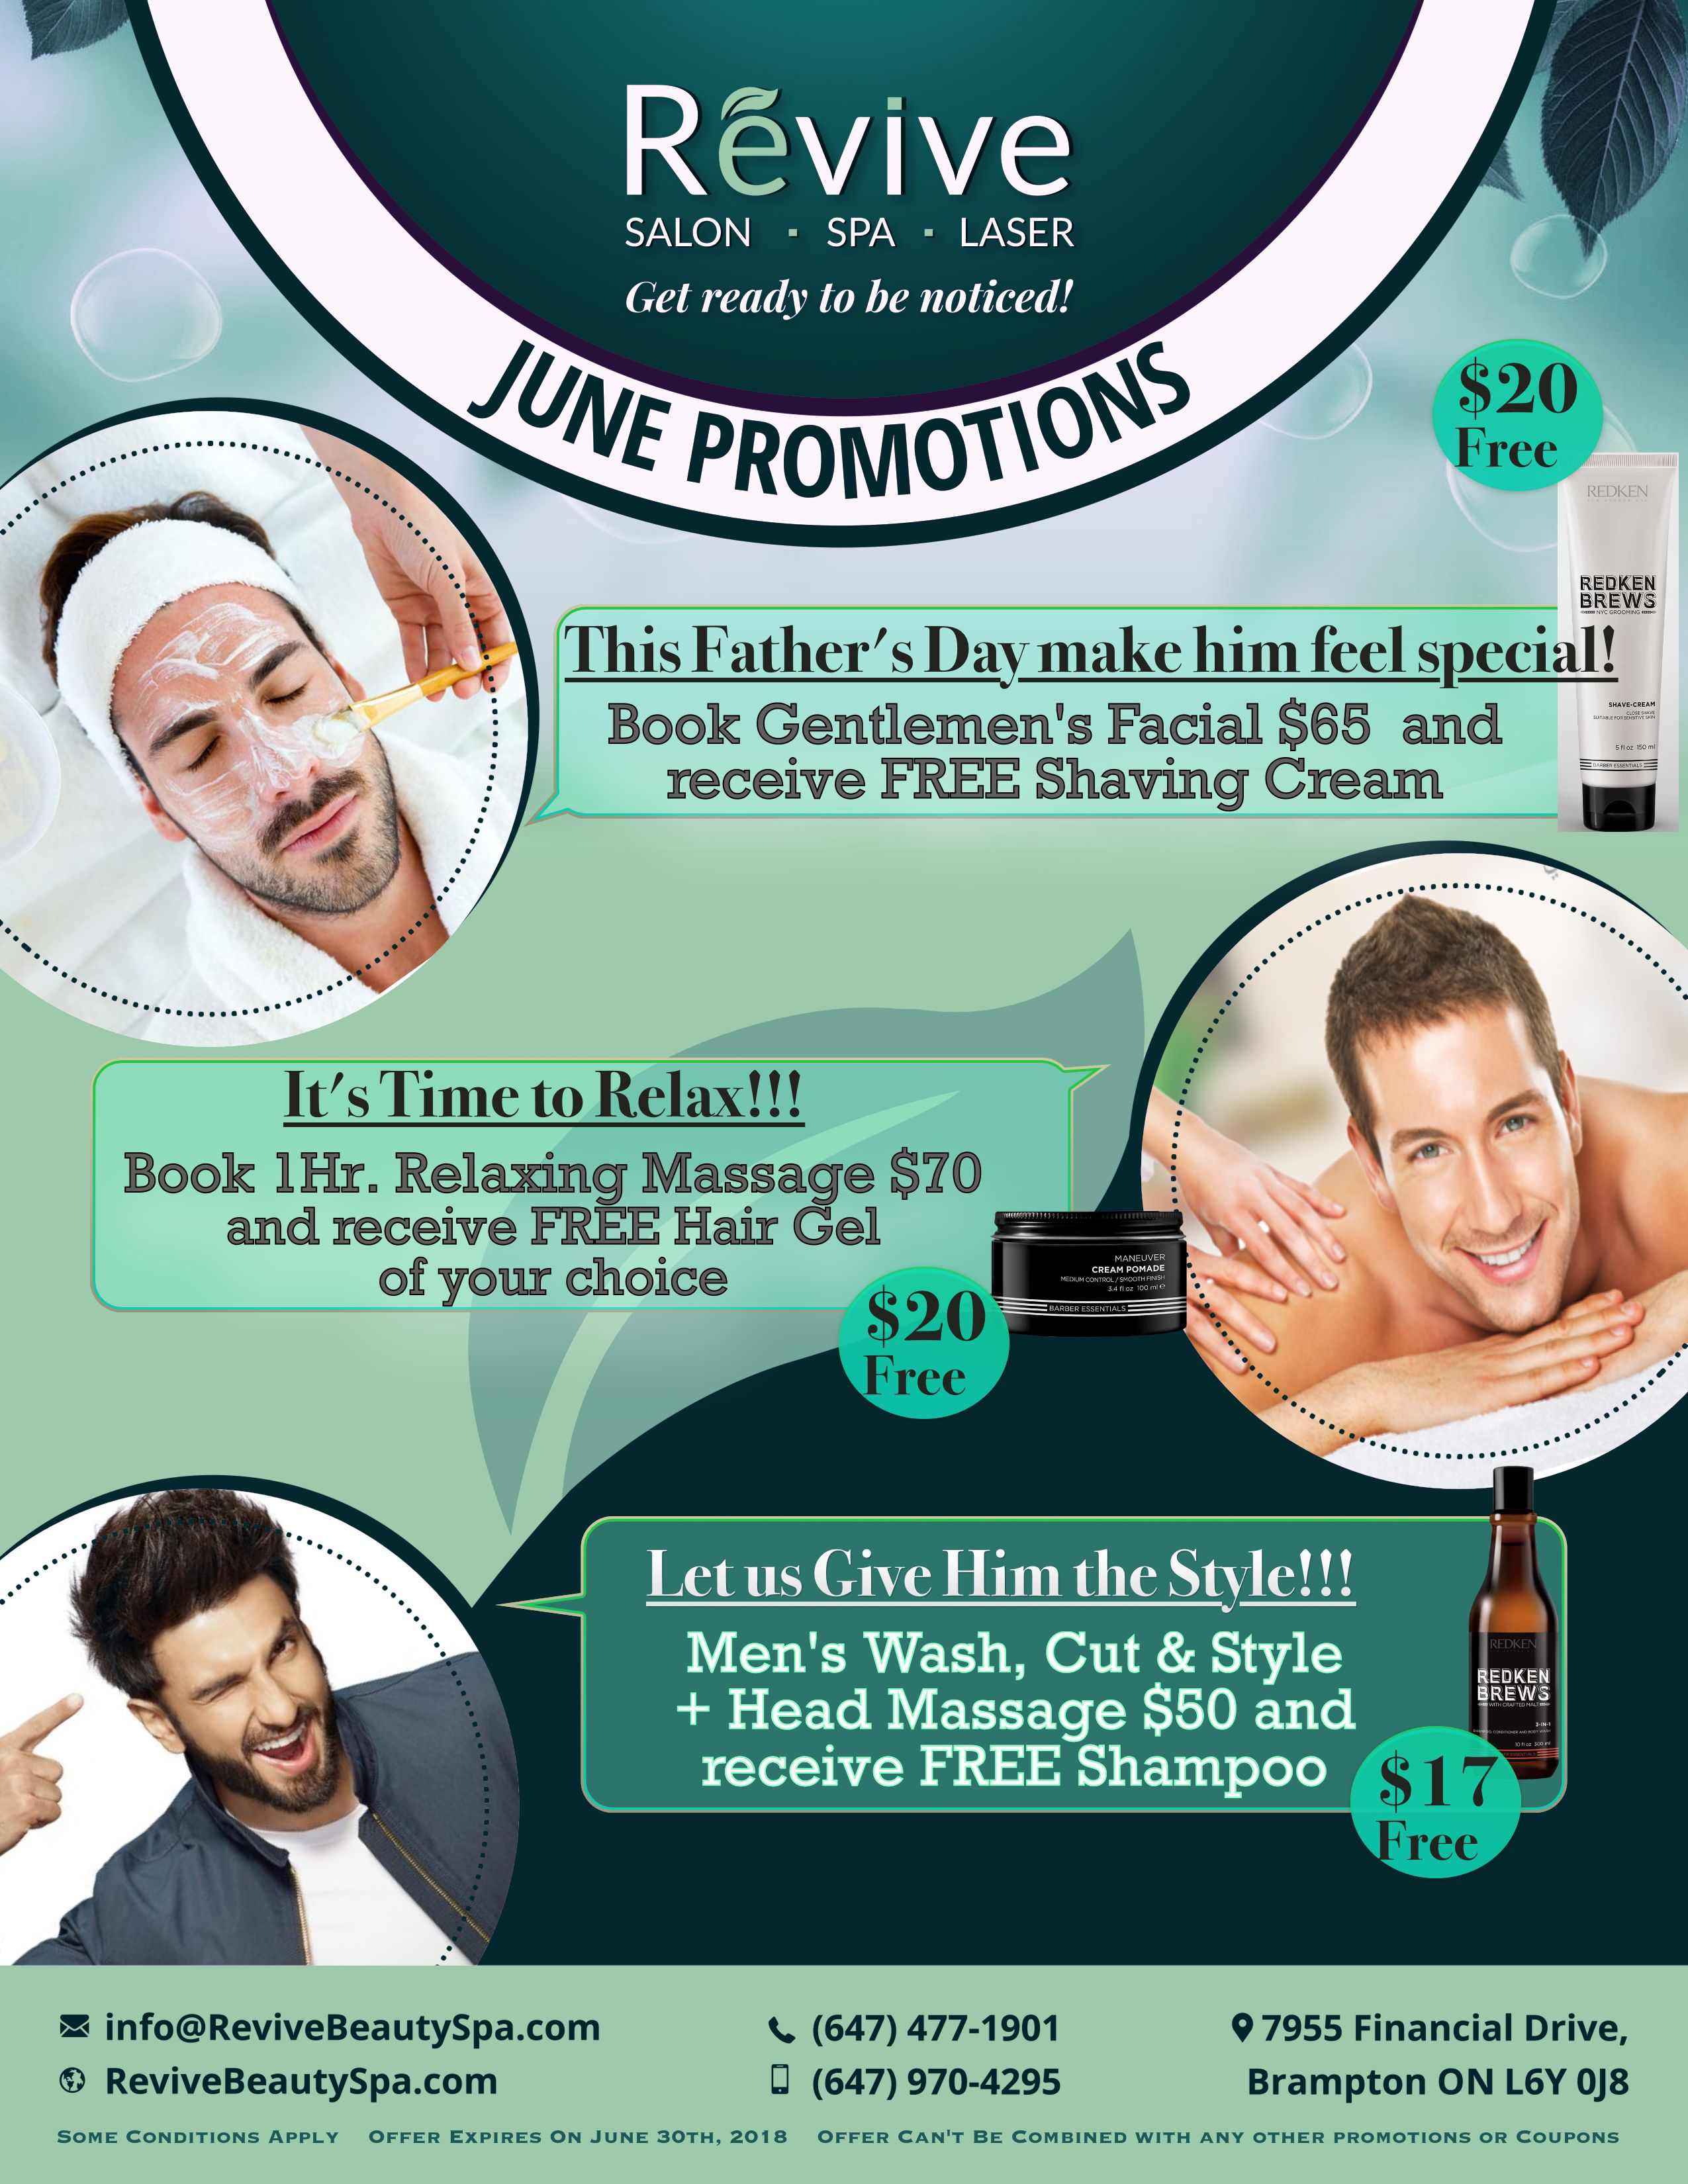 Revive June Promotion Revive June Promotion - Revive Beauty